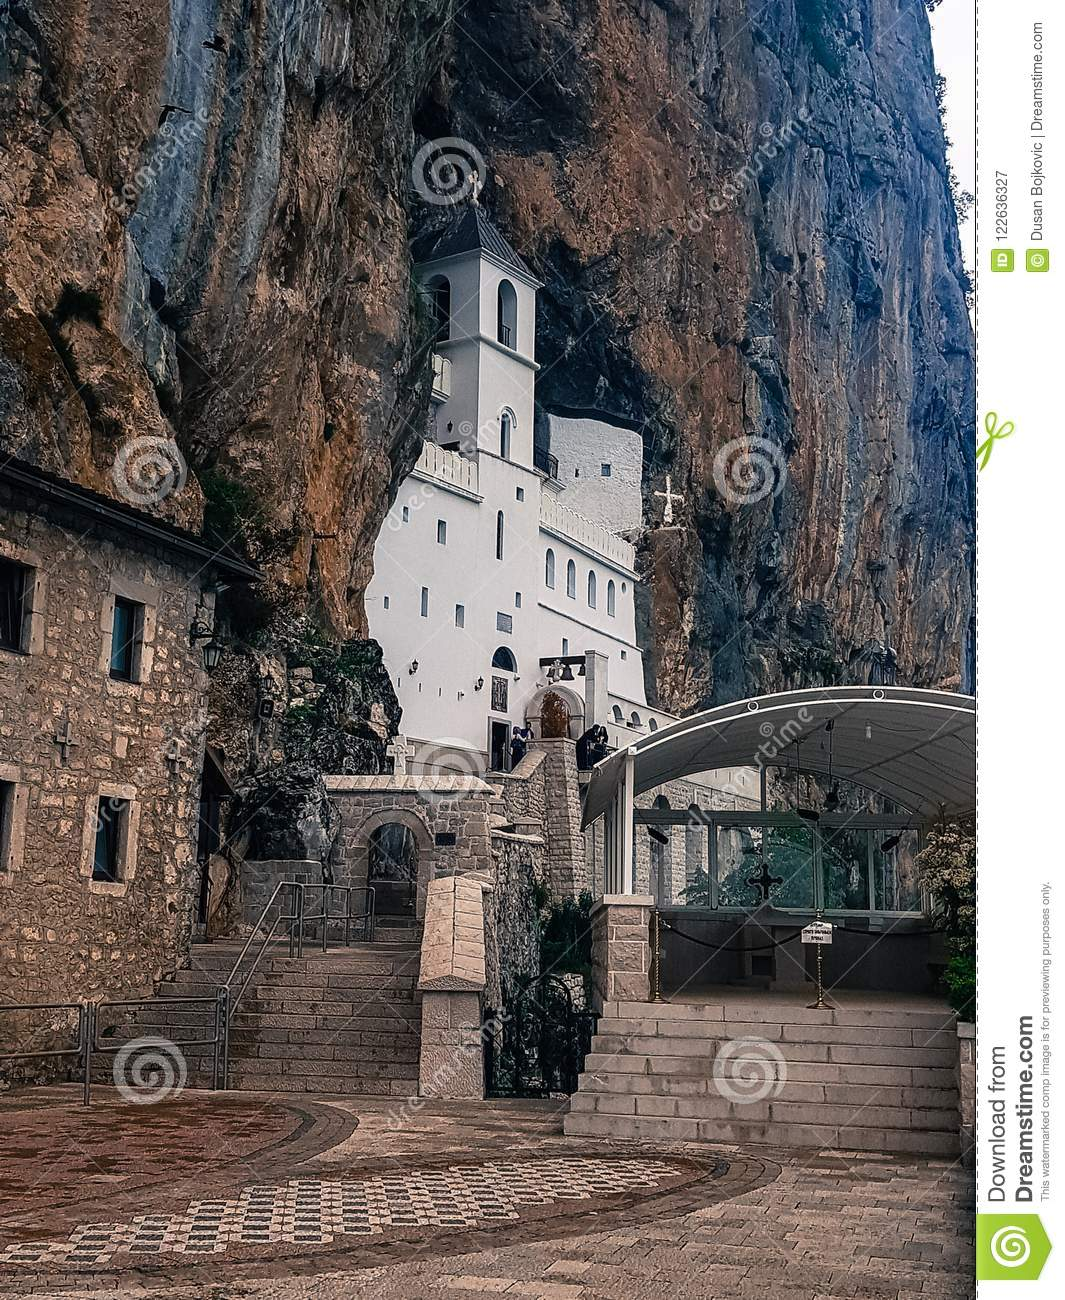 Orthodox Monastery On A Mountain From The Middle Ages